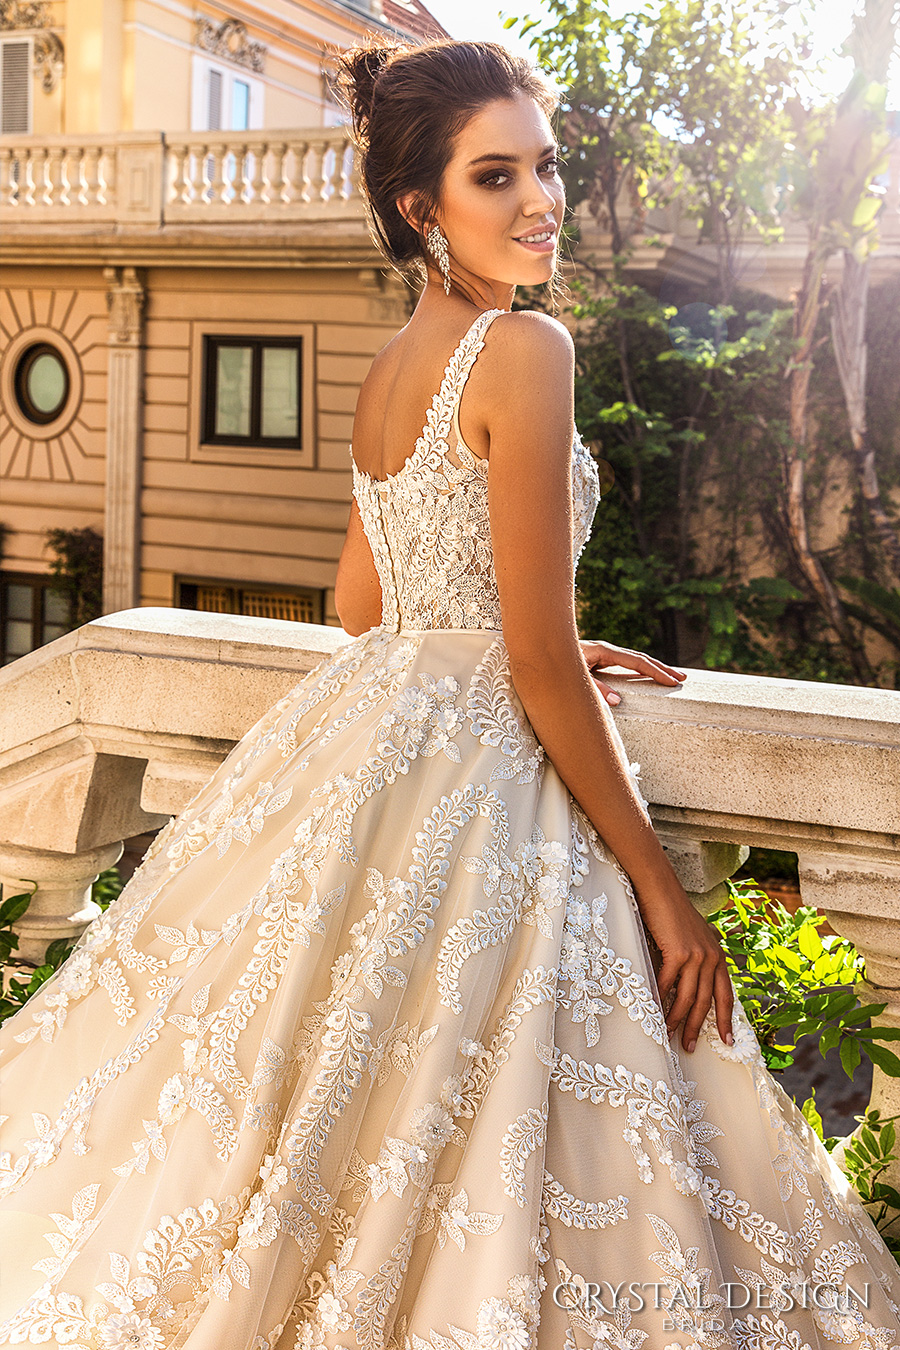 crystal design 2017 bridal sleeveless with strap scoop neckline full embellishment romantic princess ivory color ball gown a  line wedding dress royal train (etolie) zbv